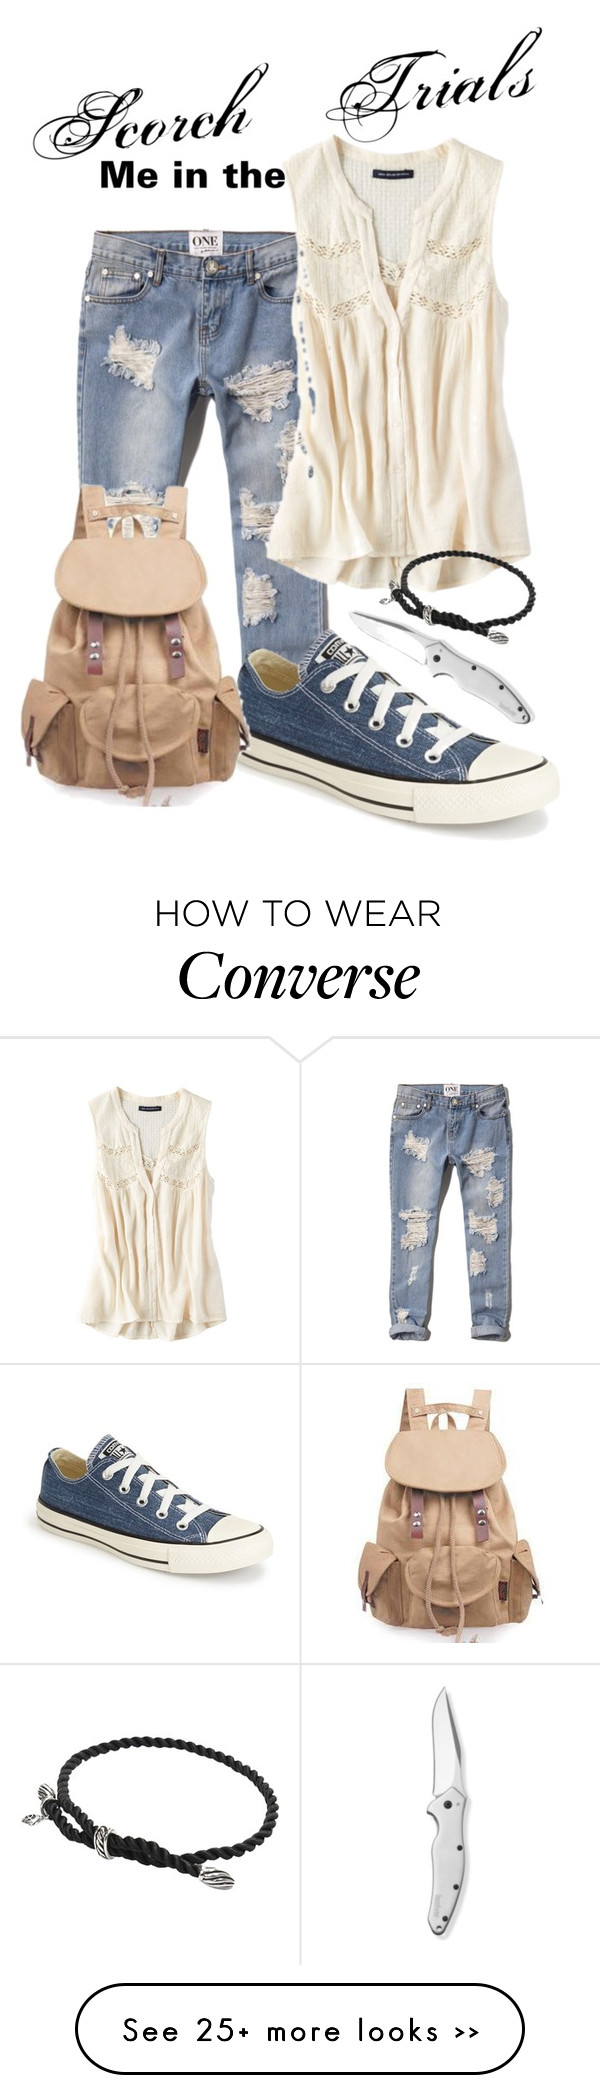 """""""Me in the Scorch Trials // Lexi"""" by maze-runner-fangirls on Polyvore"""